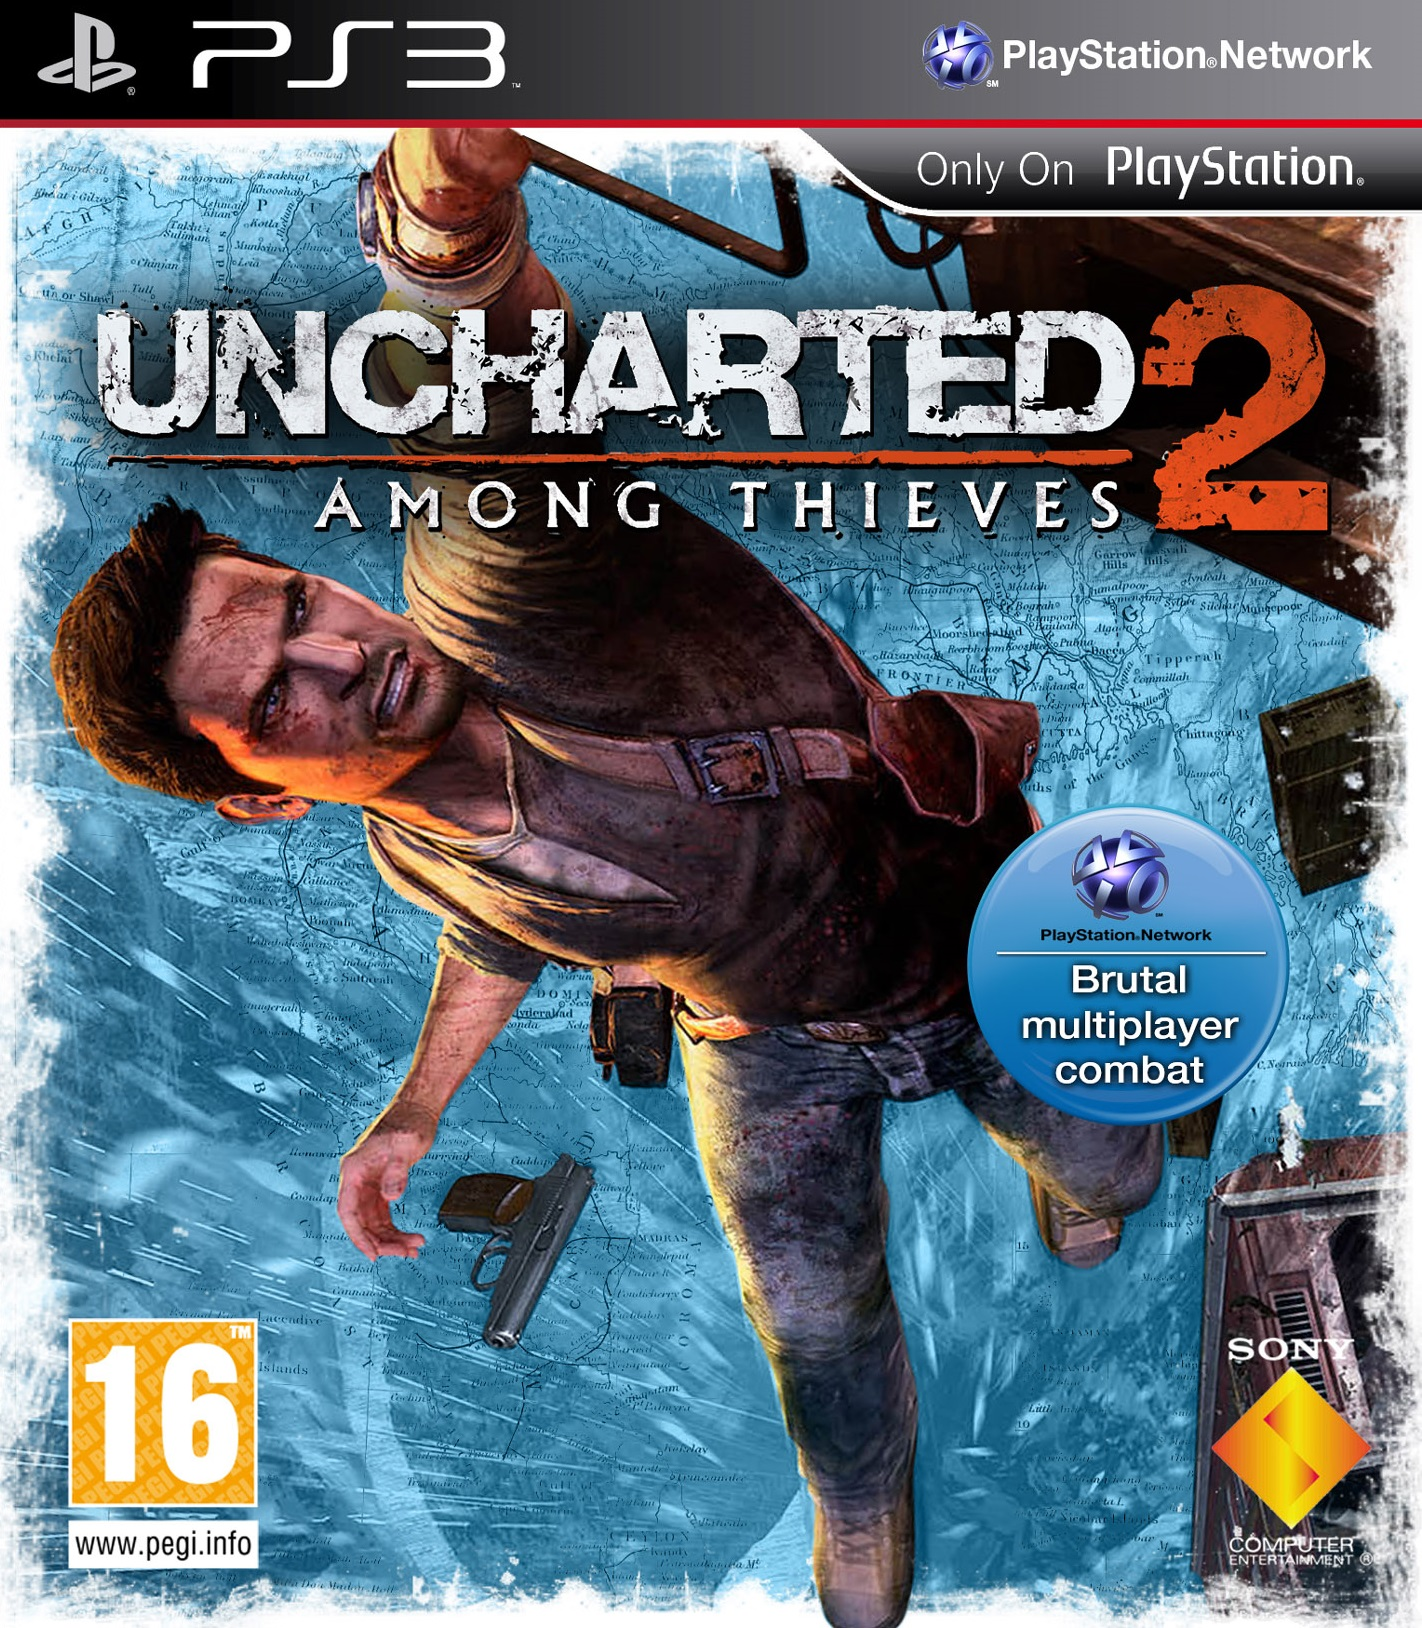 Uncharted 2 Among Thieves Wallpapers Video Game Hq Uncharted 2 Among Thieves Pictures 4k Wallpapers 2019